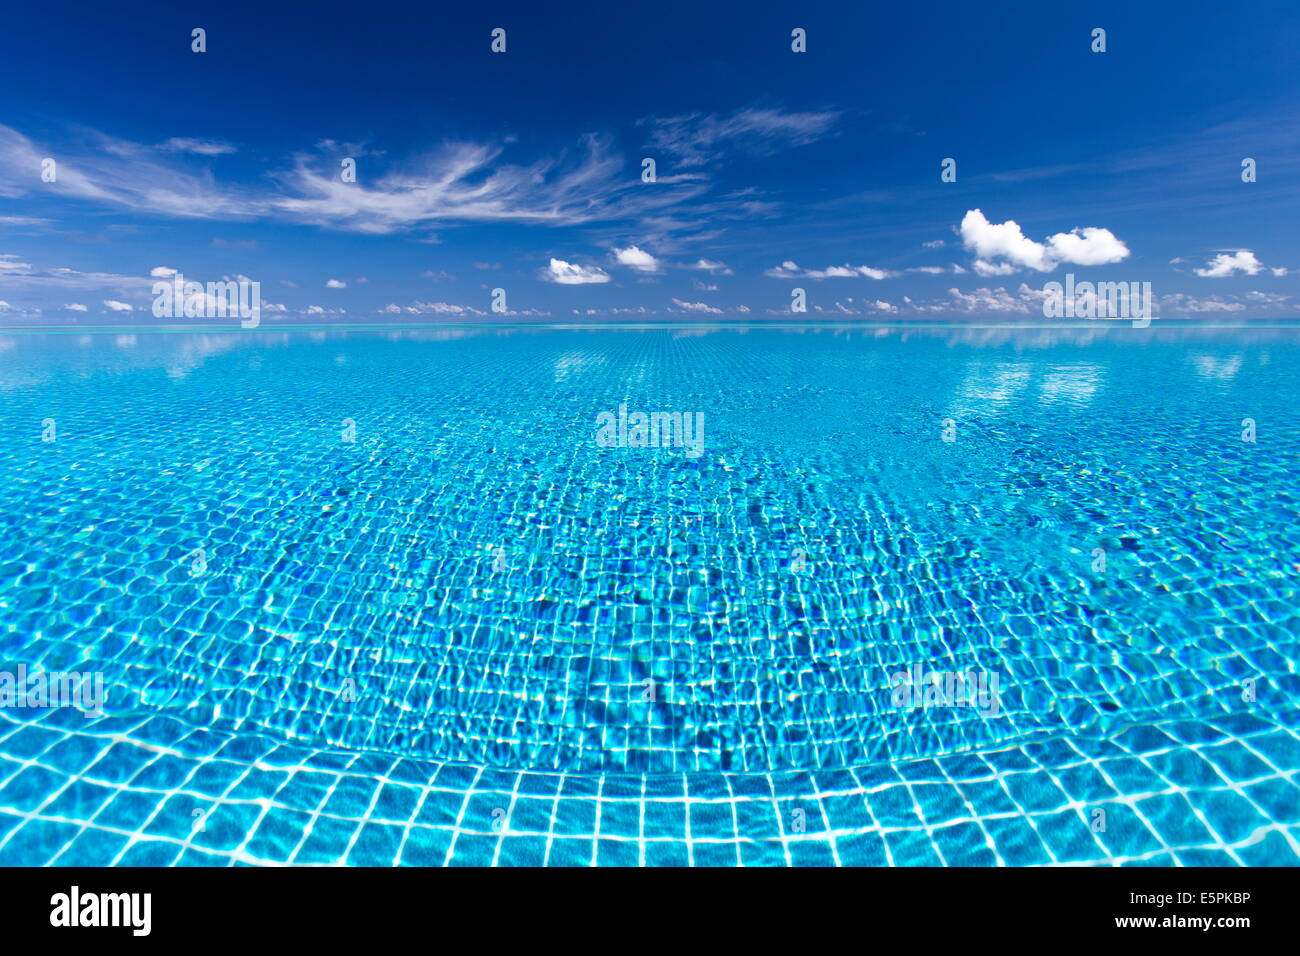 Infinity pool, Maldives, Indian Ocean, Asia - Stock Image